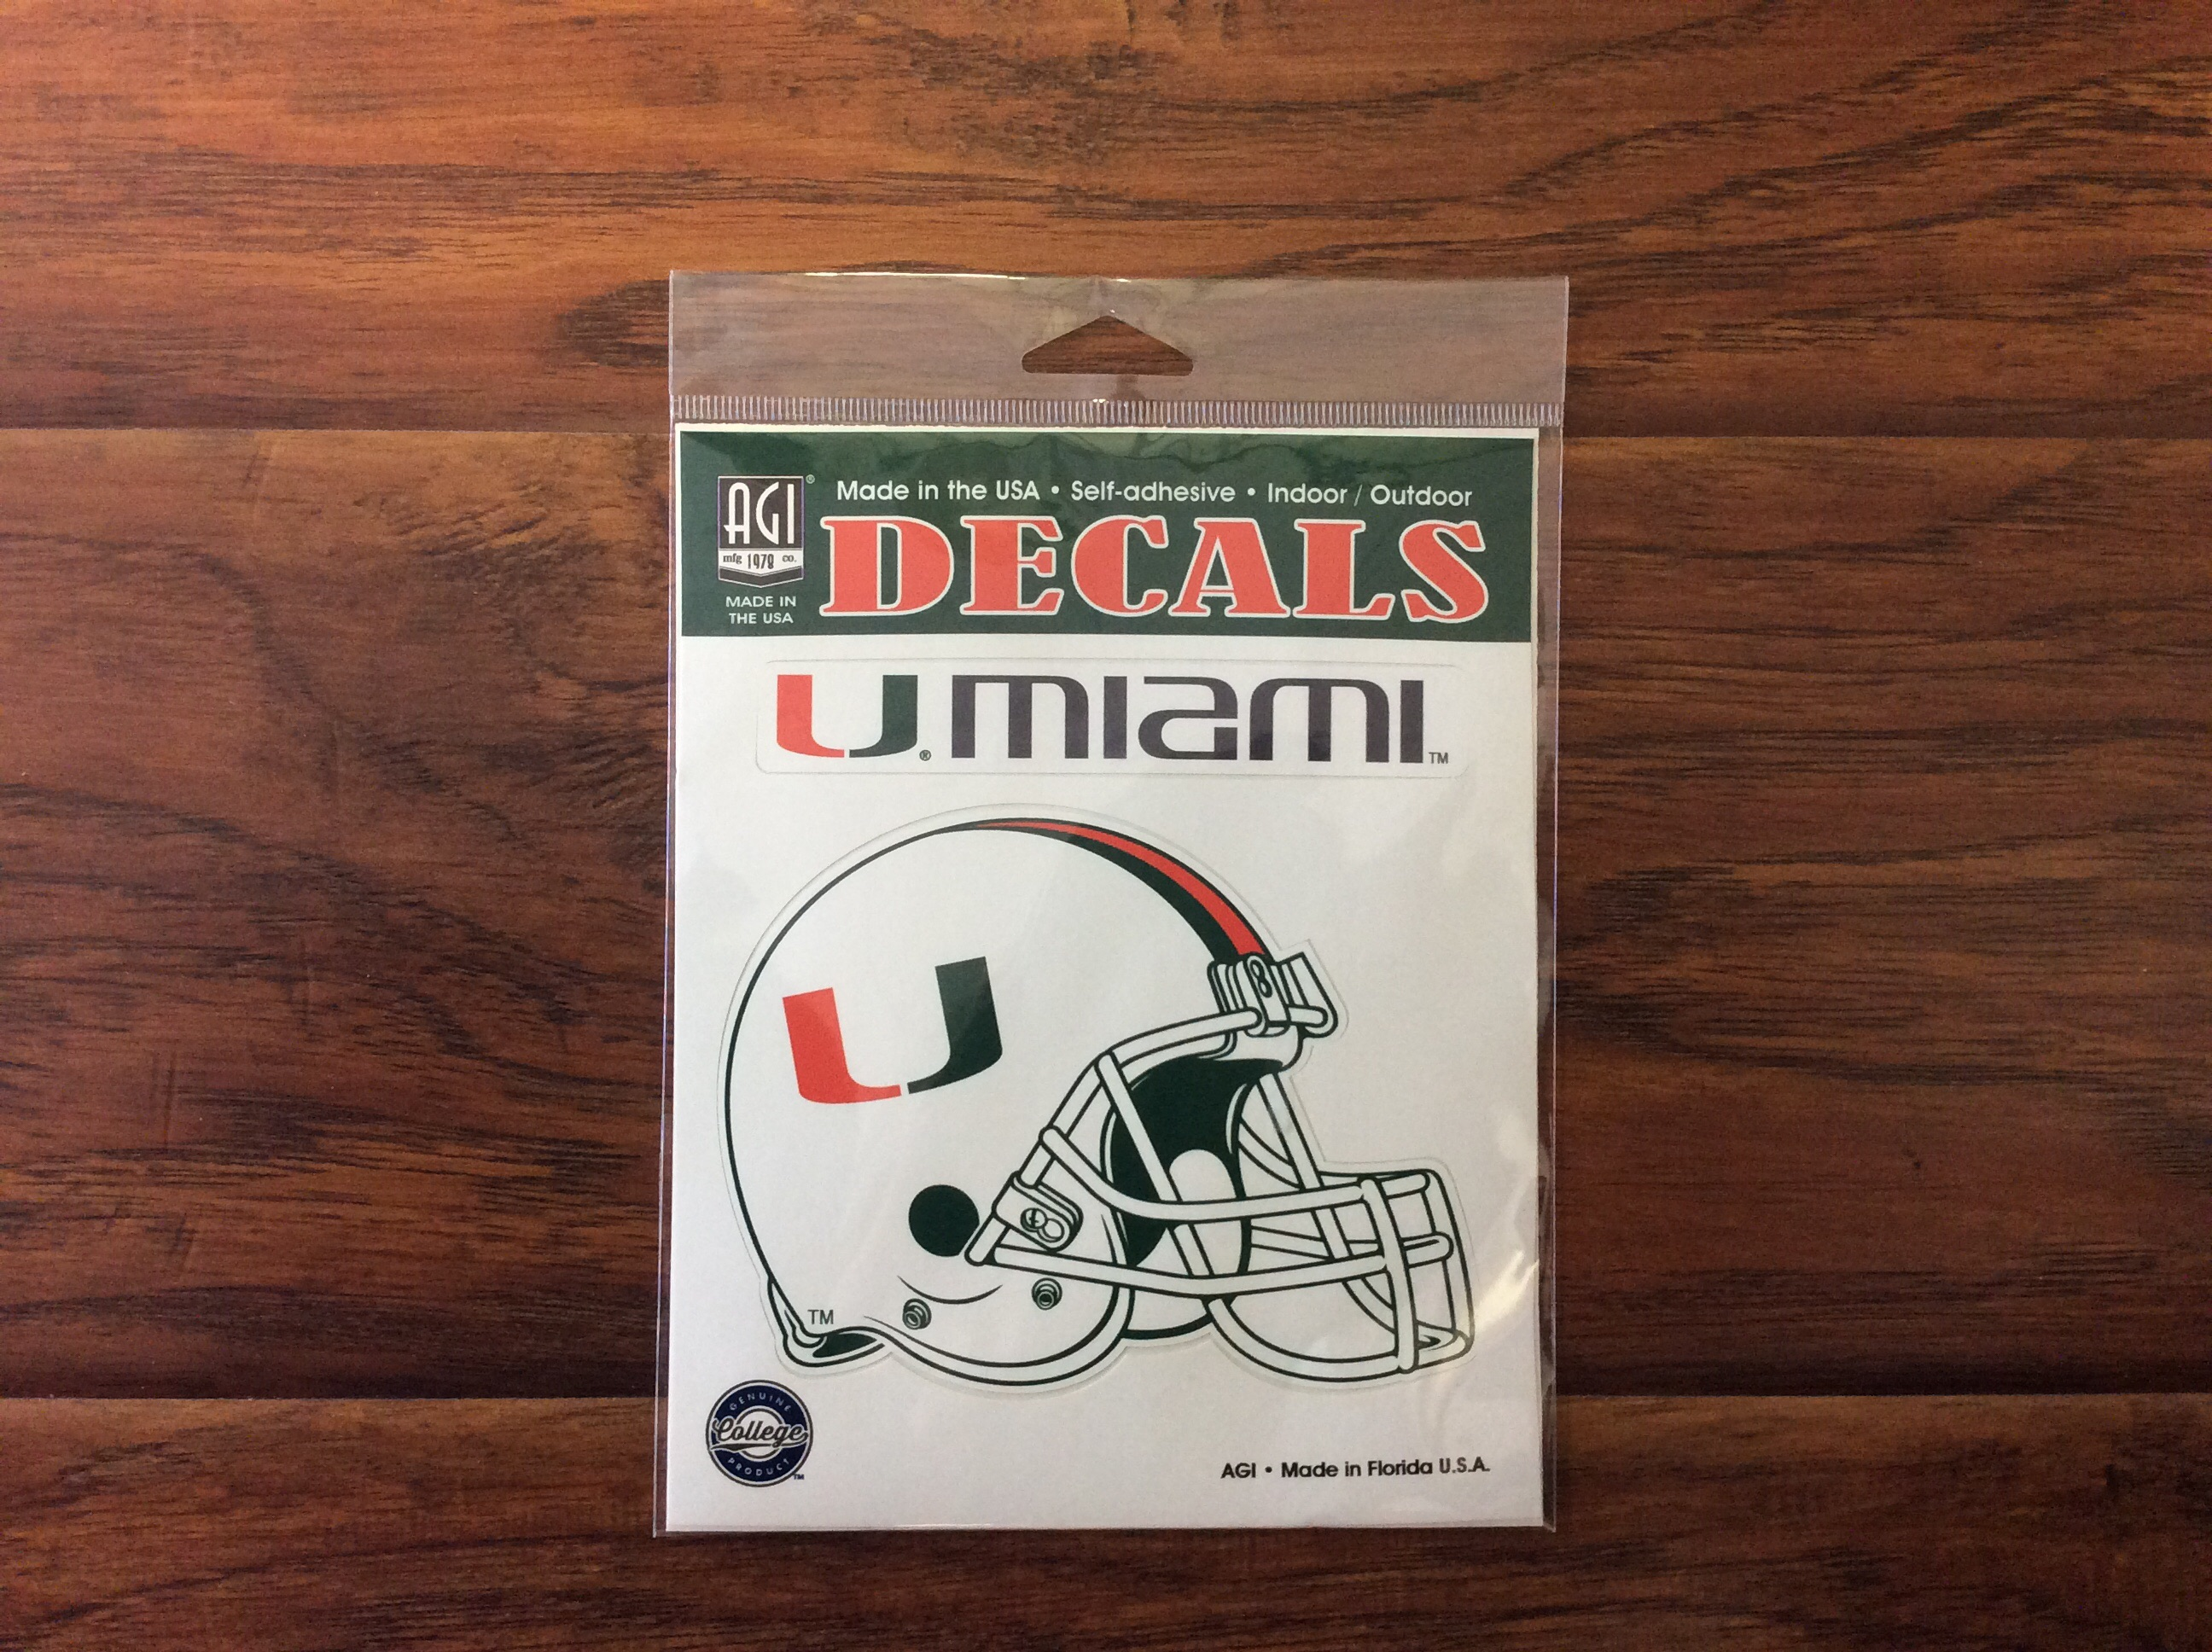 University of Miami Decal